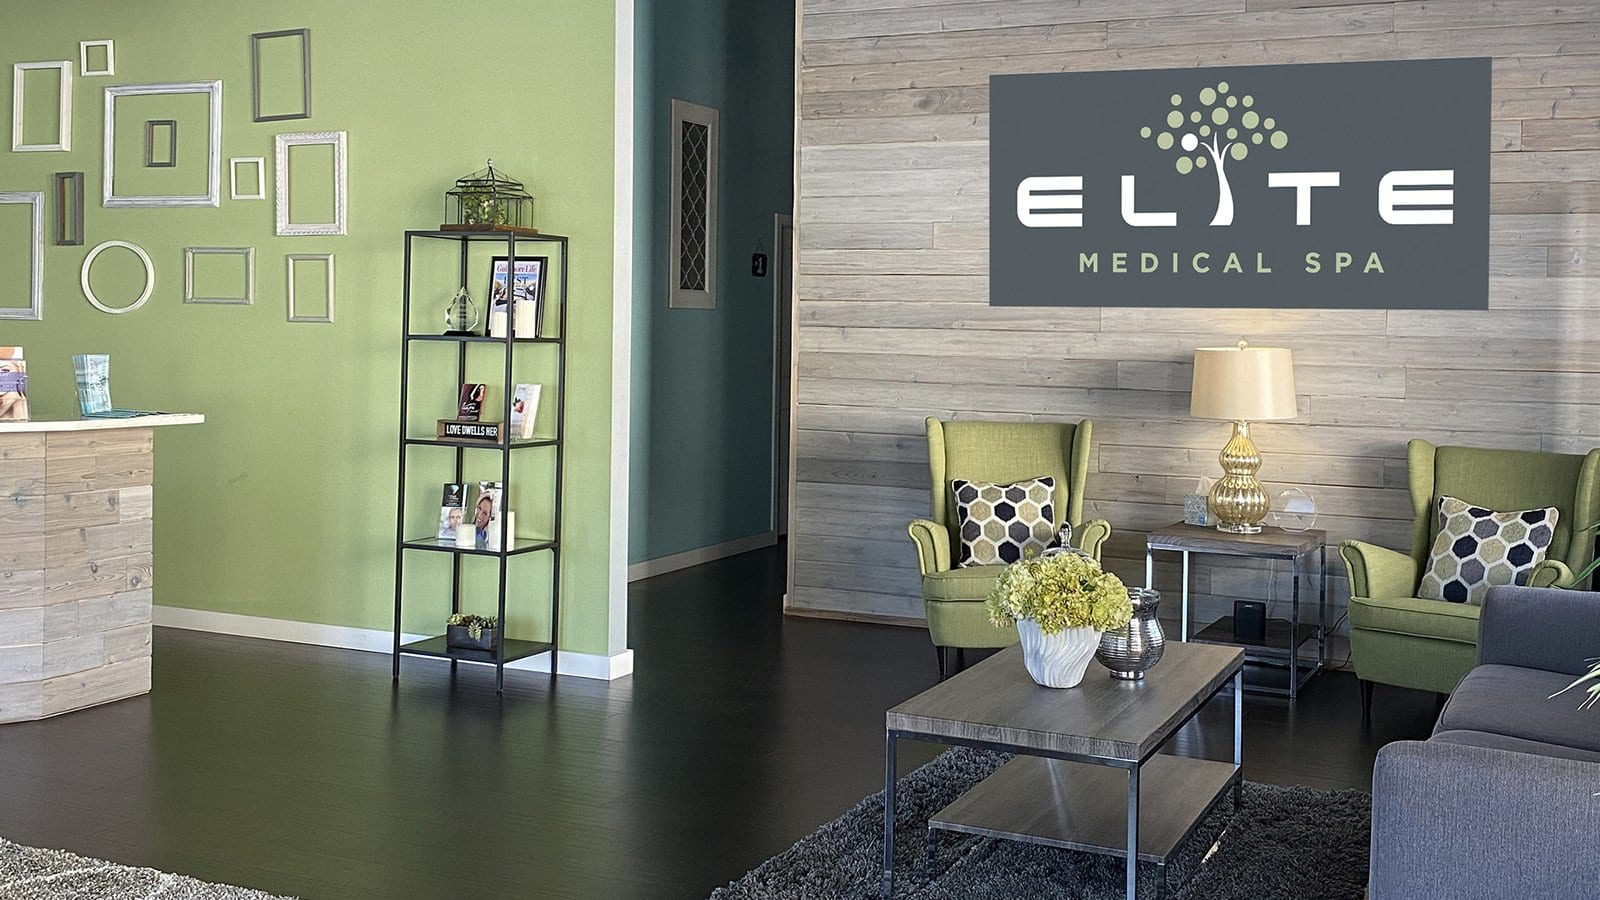 sarasota medical spa elite medical spa lobby